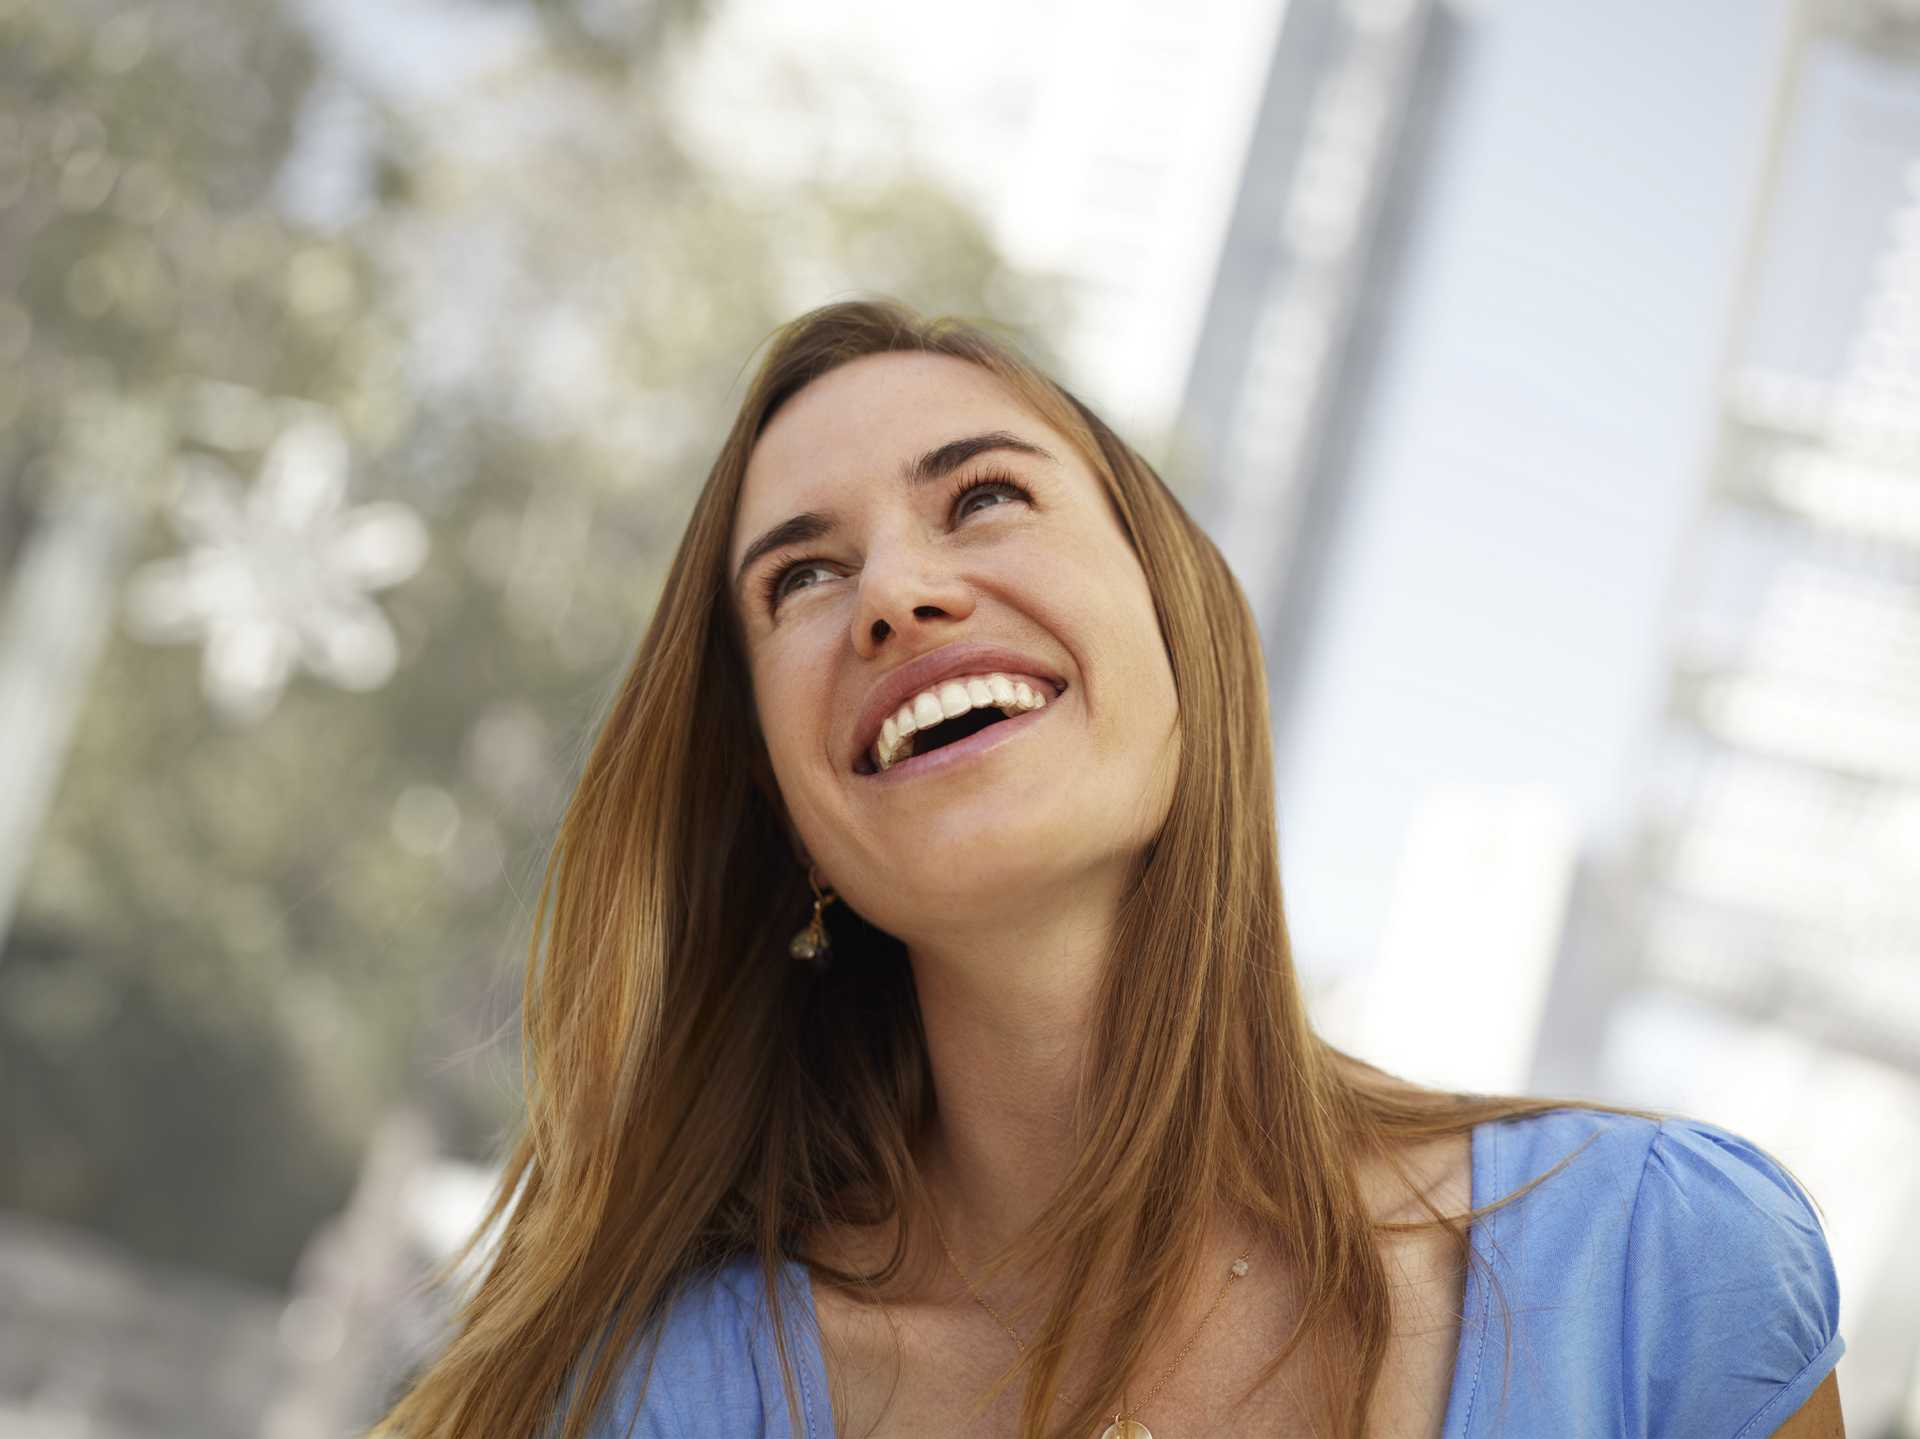 Young woman laughing wearing invisalign